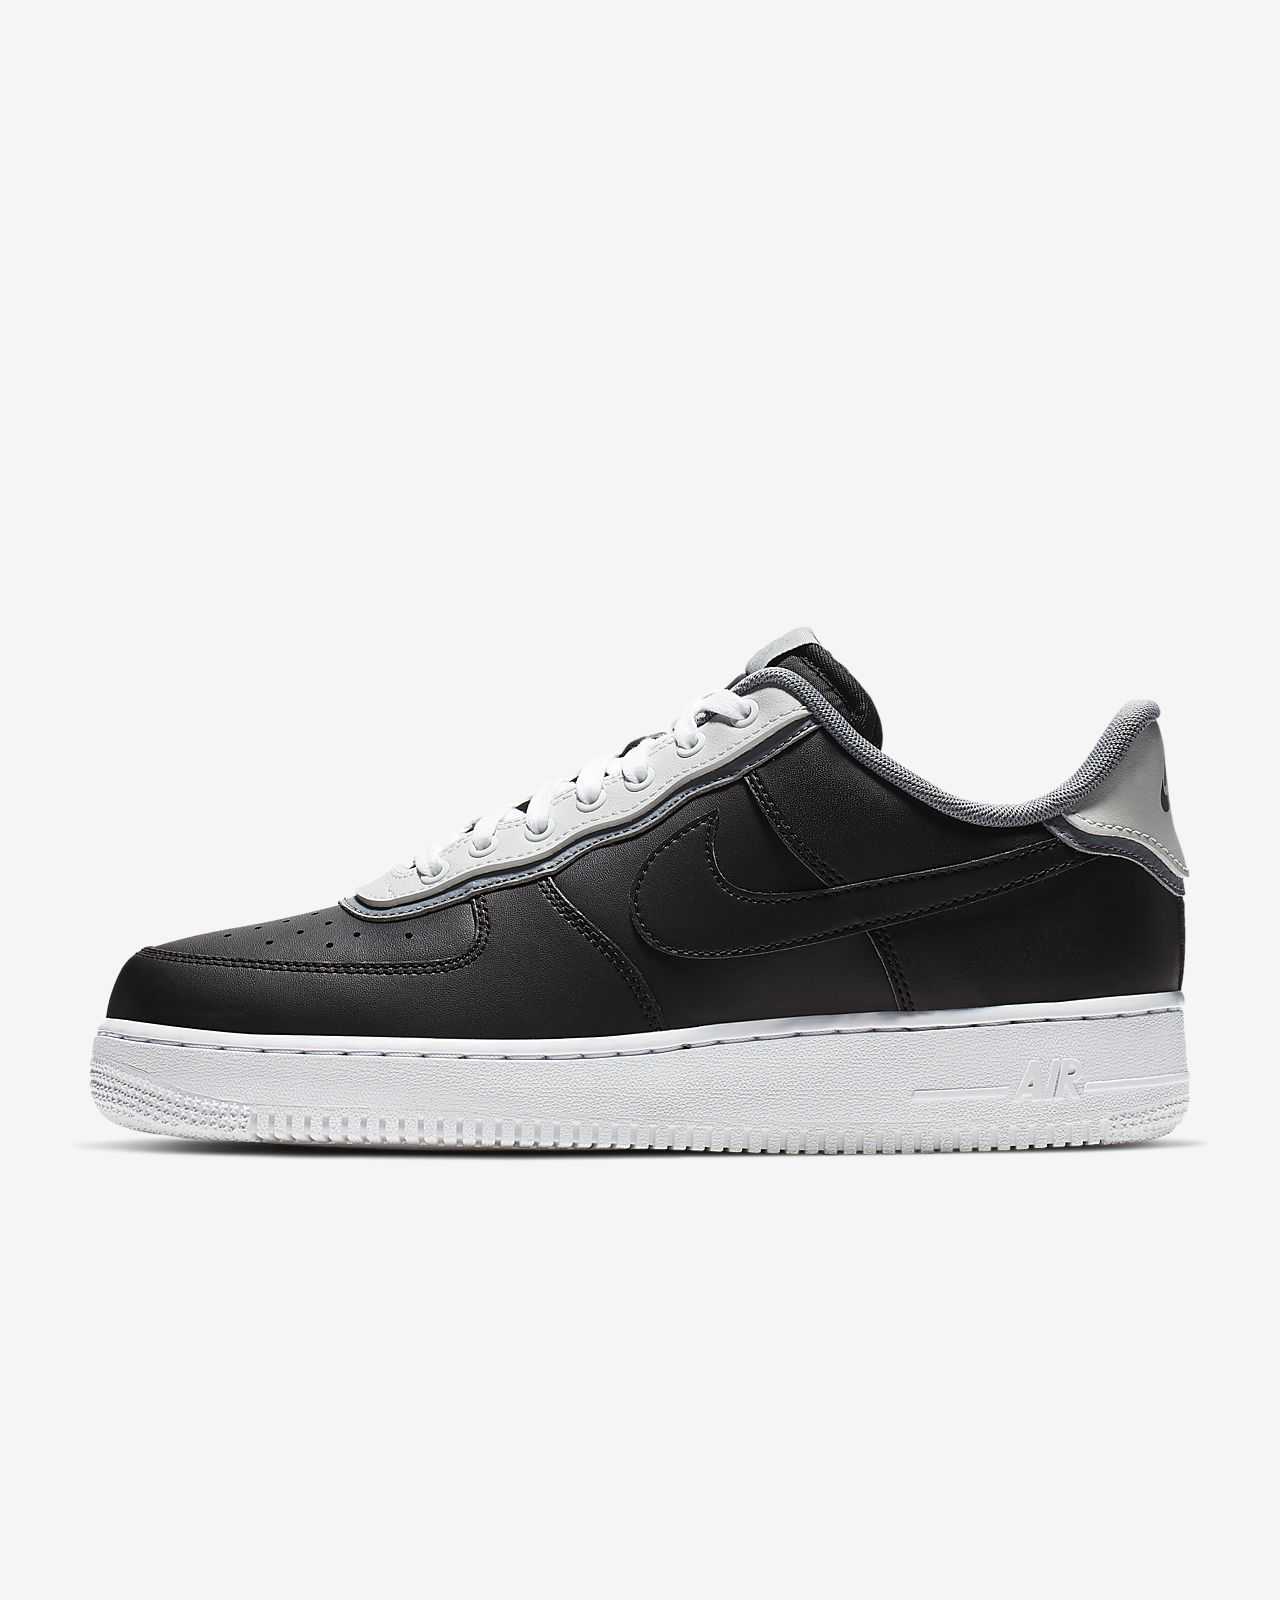 outlet store c5563 a9051 ... Nike Air Force 1  07 LV8 1 Men s Shoe